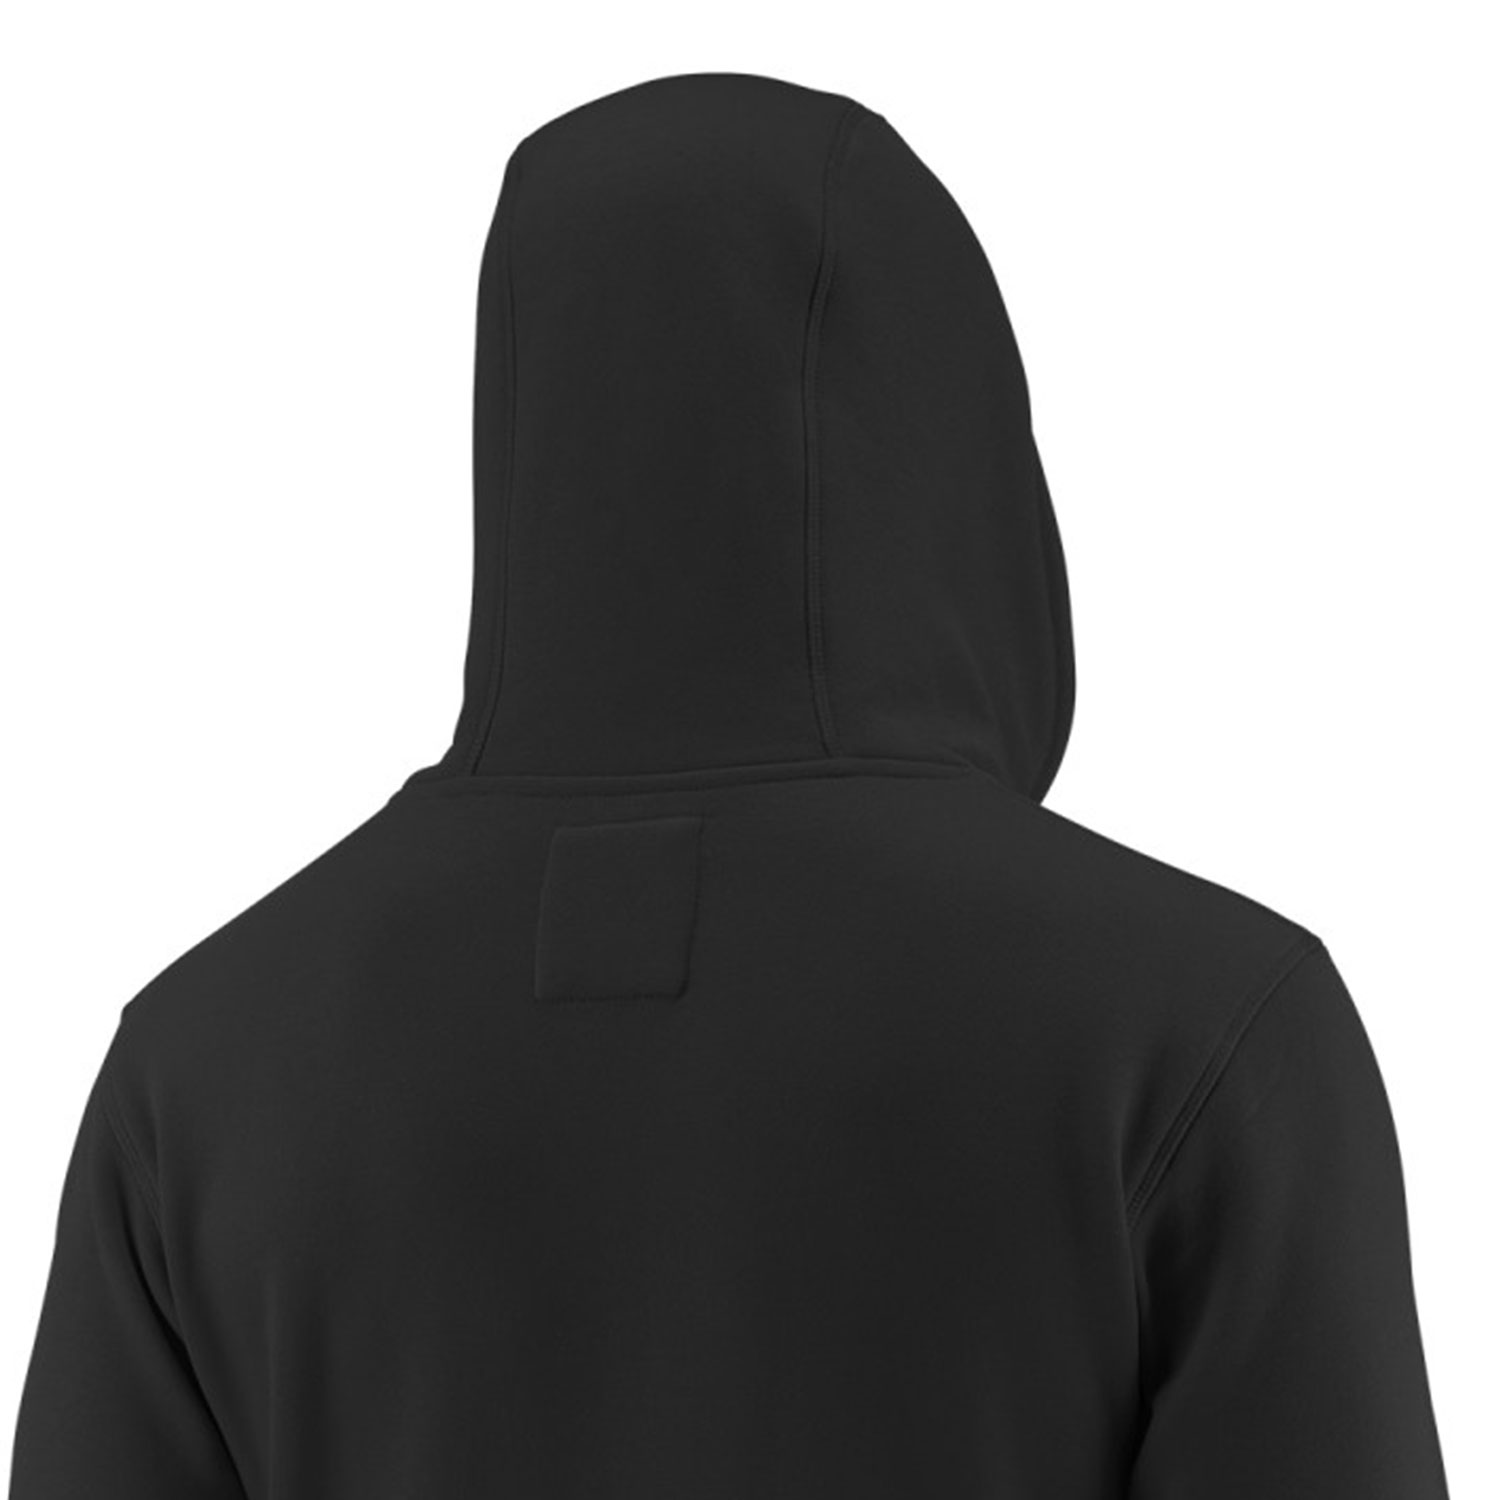 Wilson Team Script Full Zip Hoodie - Black/White